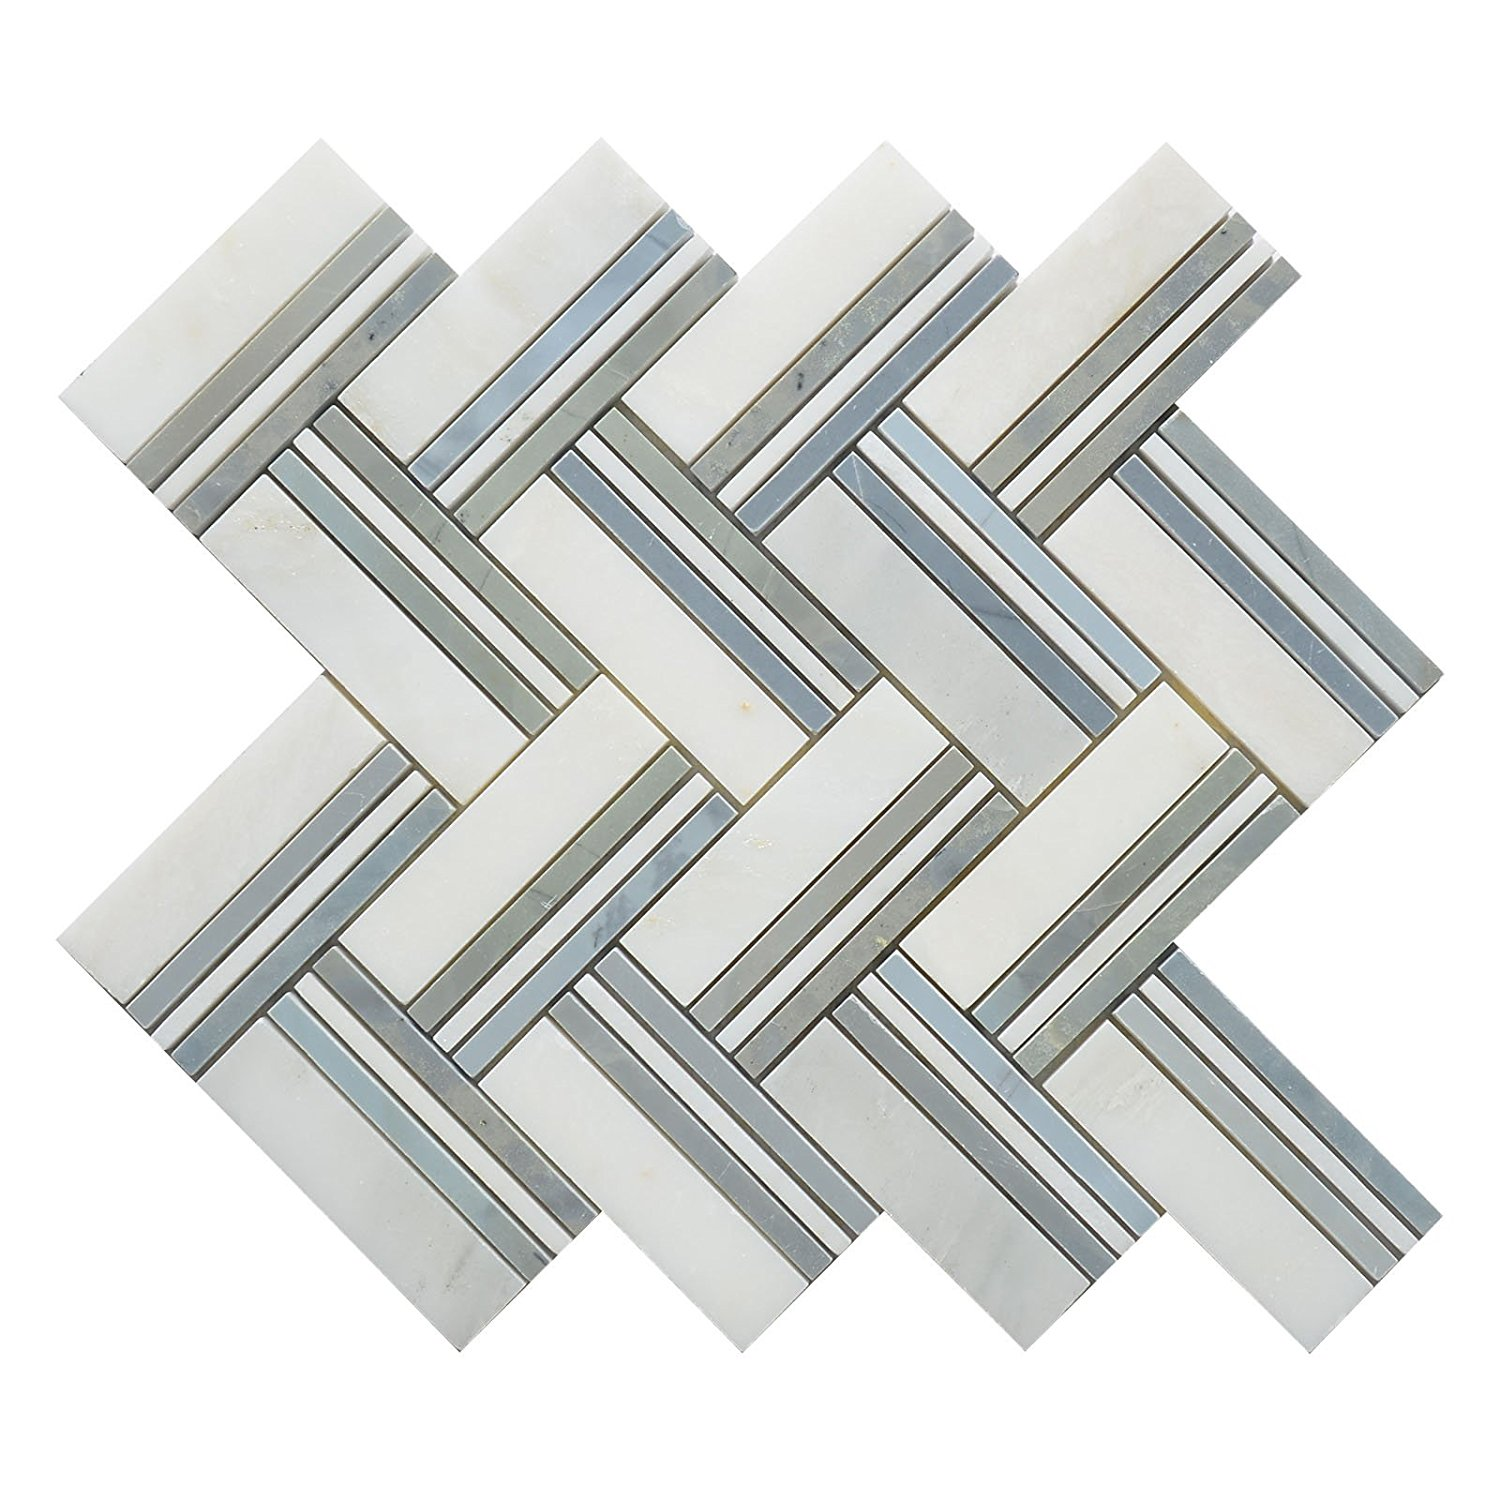 """Marble Mosaic Tile, """"Quilt Collection"""", MM 8103 - Maurice, 4""""X6"""" Big Herringbone, 12""""X11"""", Polished (Lot of 50 Sheets)"""